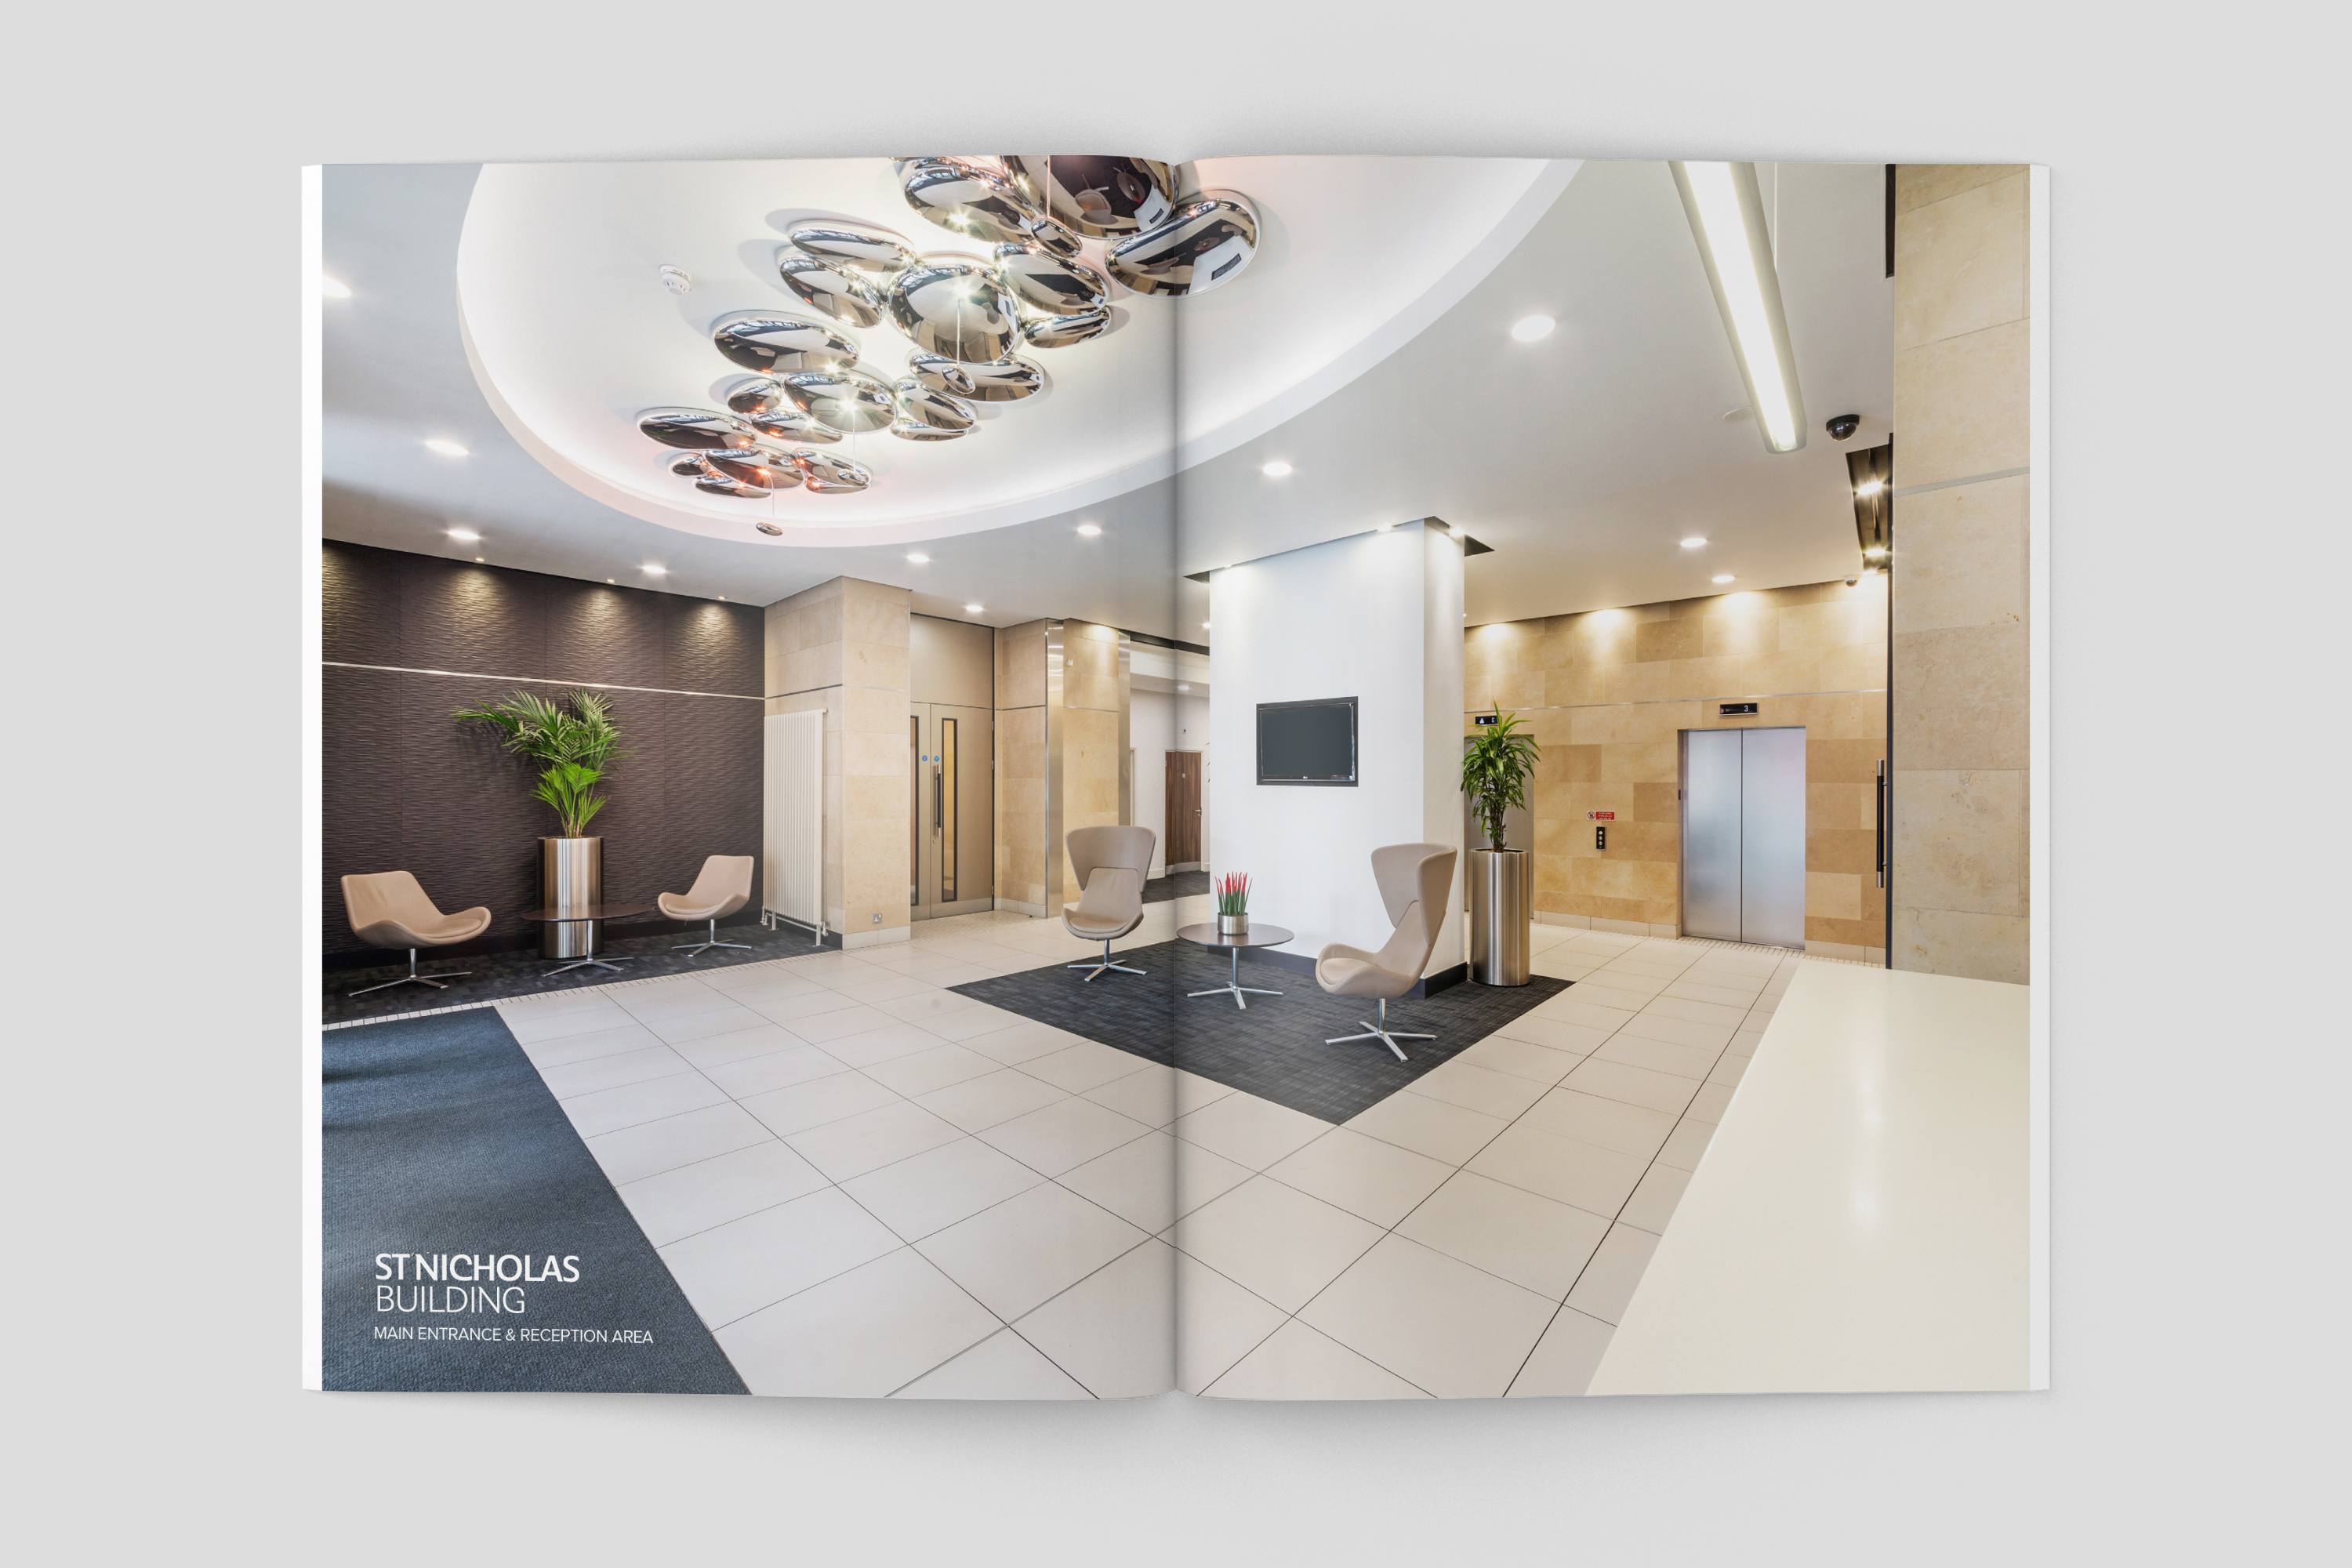 New letting brochure for St Nicholas Building, Newcastle upon Tyne